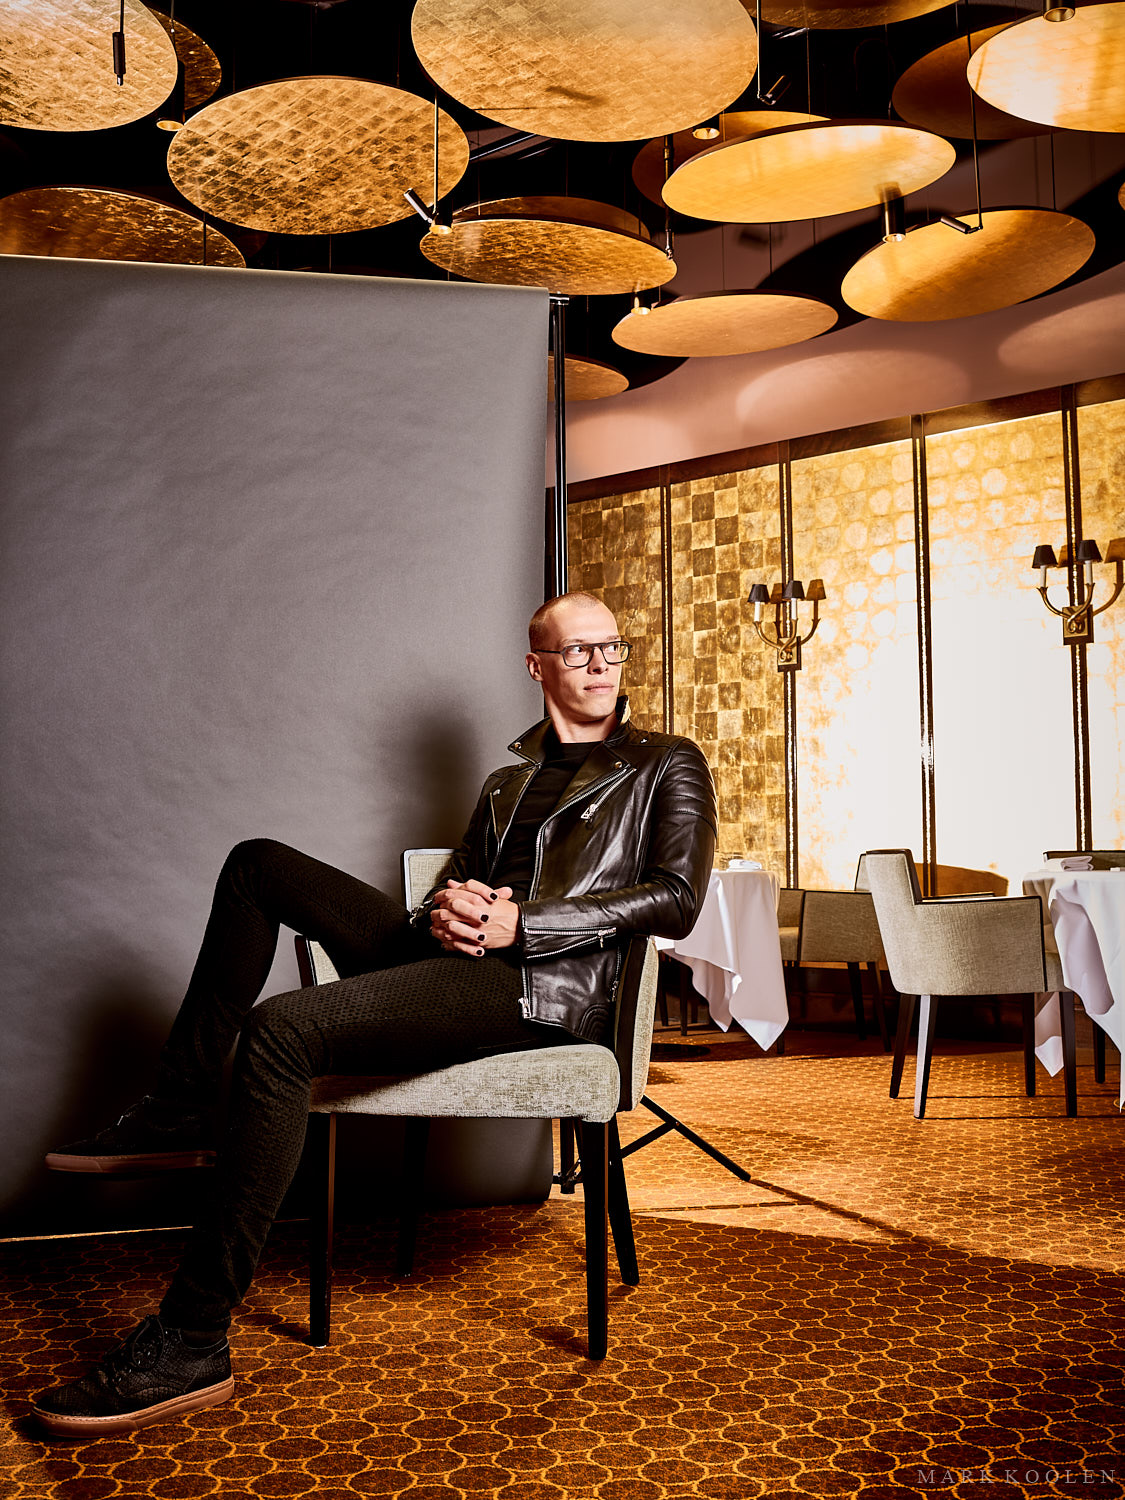 The golden boy high end boutique photographer Mark Koolen photography. Gold location in an exclusive setting with an golden ceiling and carpet floor. Location is michelin restaurant Bord'Eau Amsterdam.